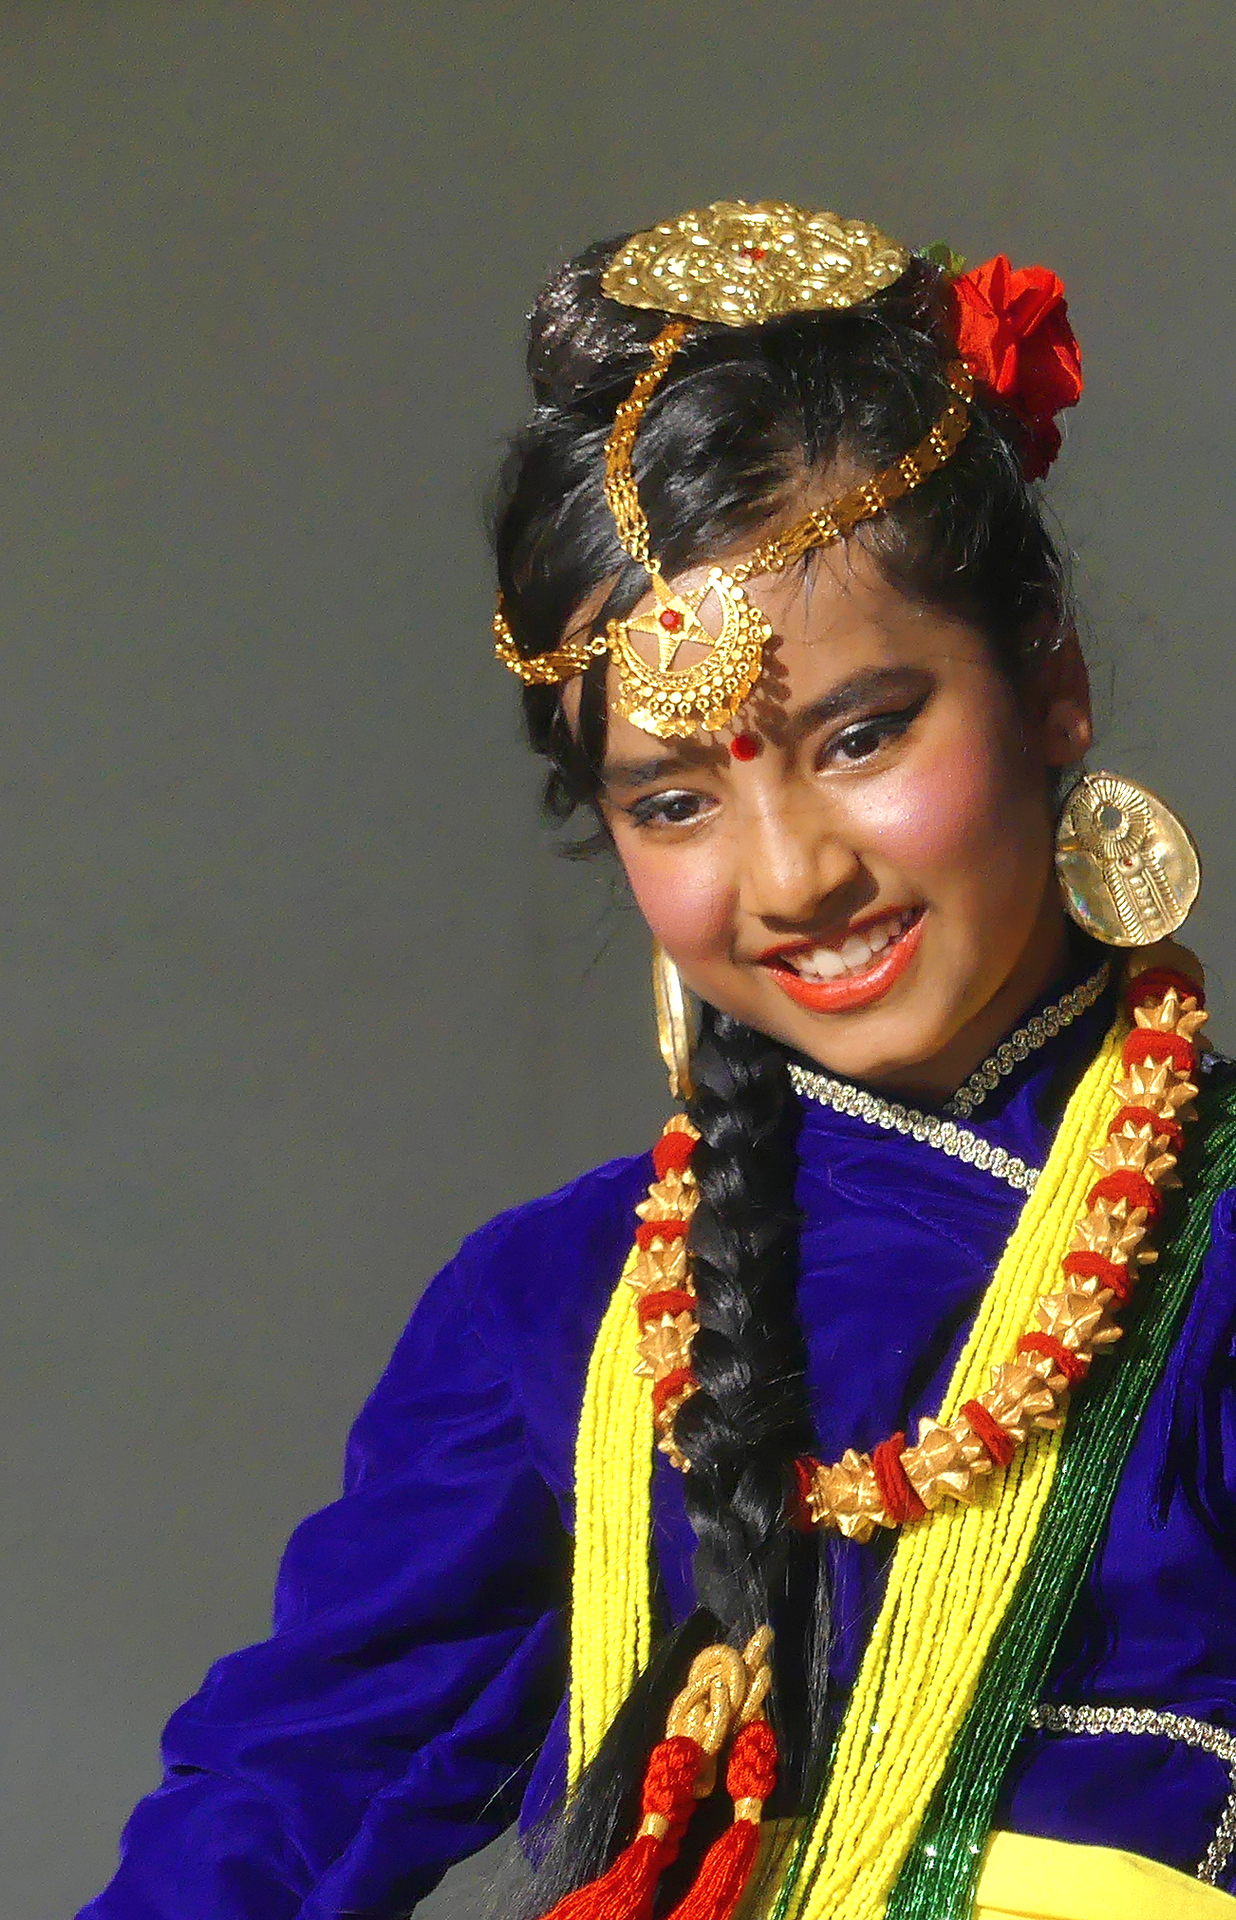 Nepalese Dancer